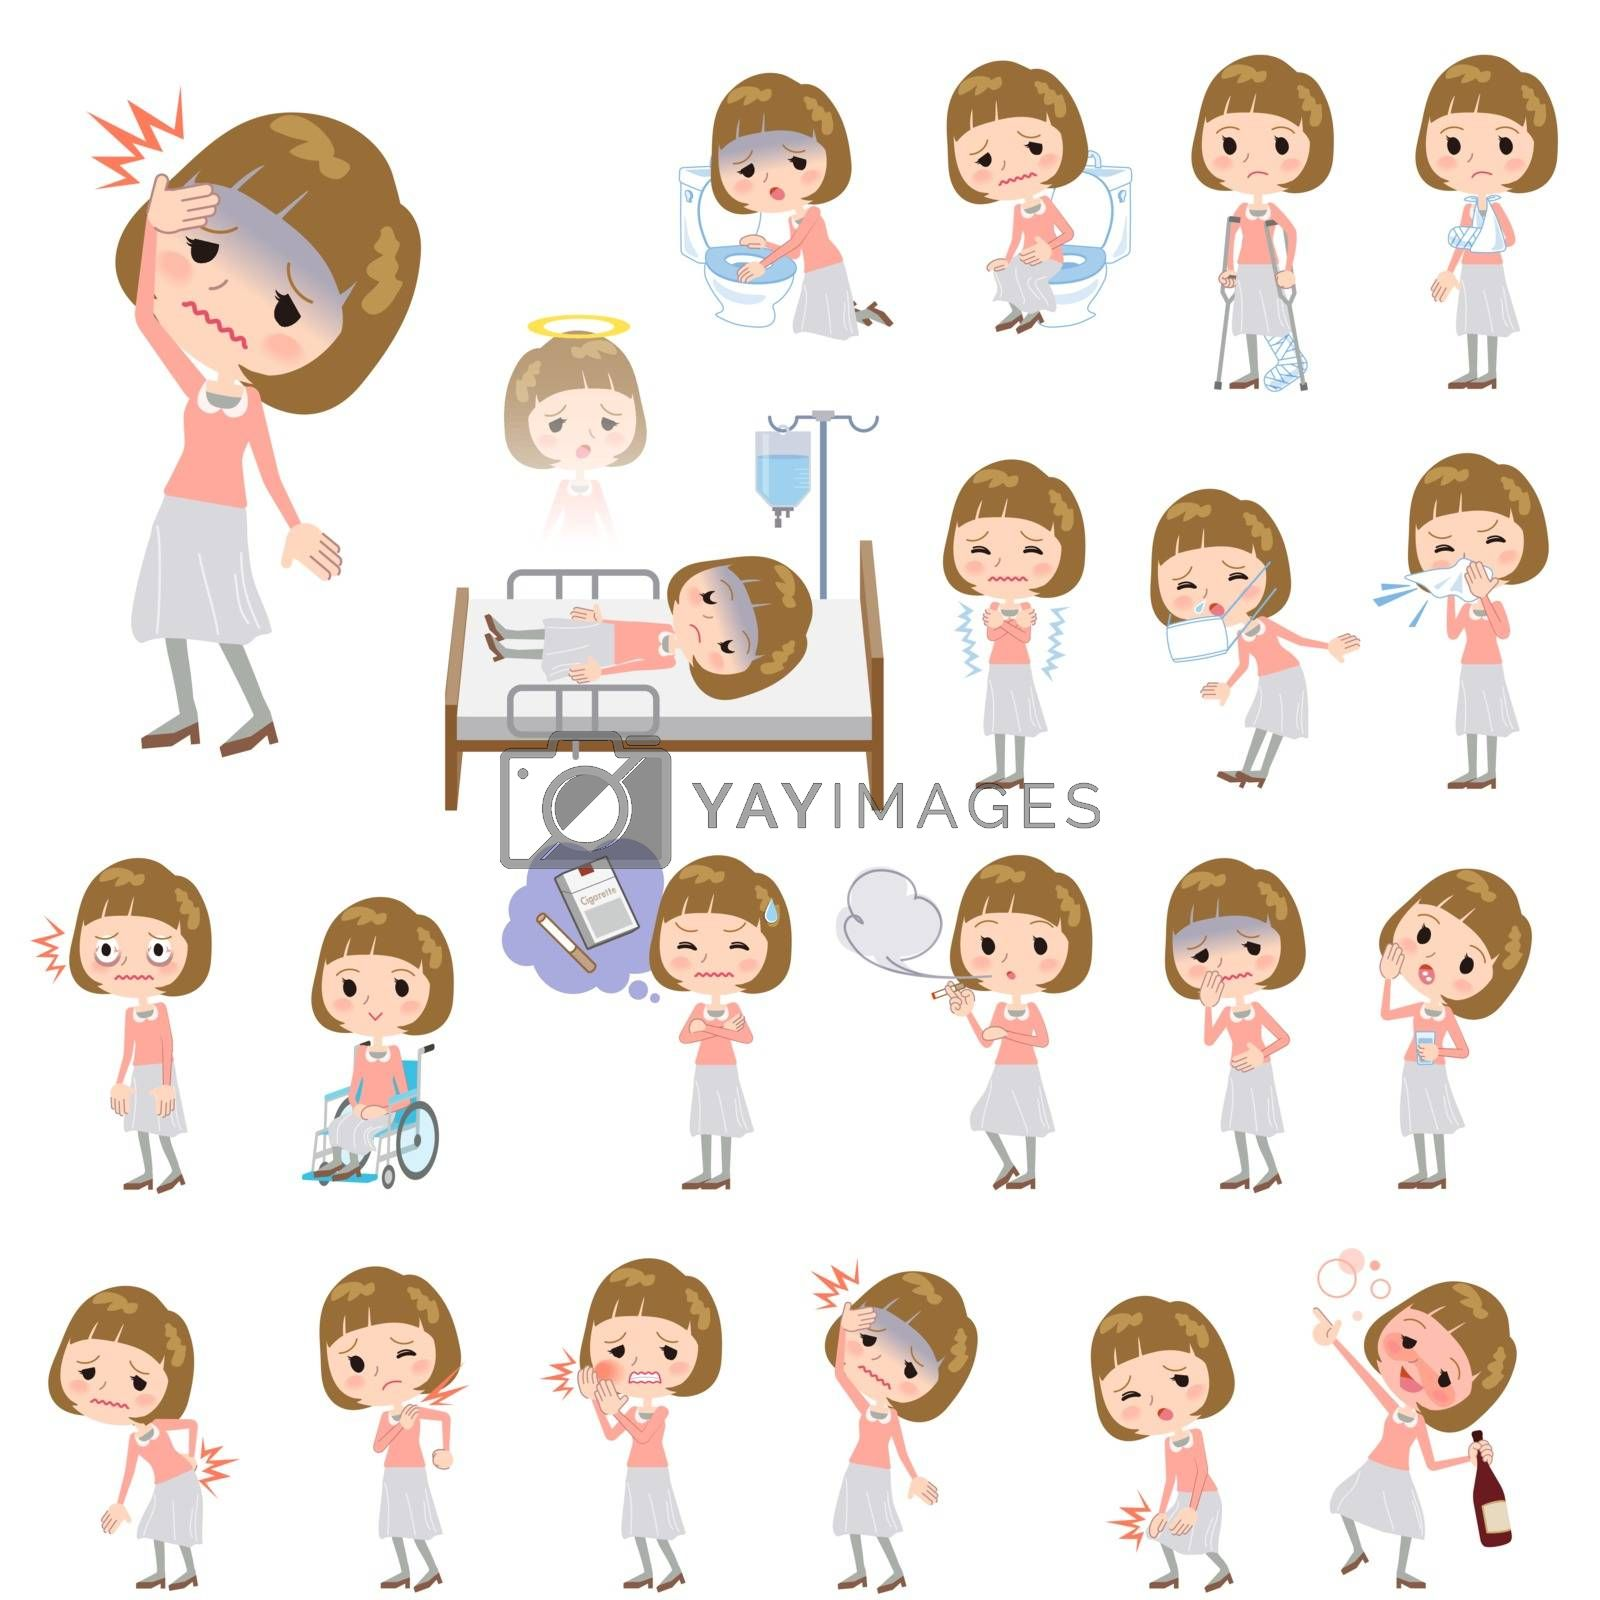 Set of various poses of Straight bangs hair pink blouse women About the sickness